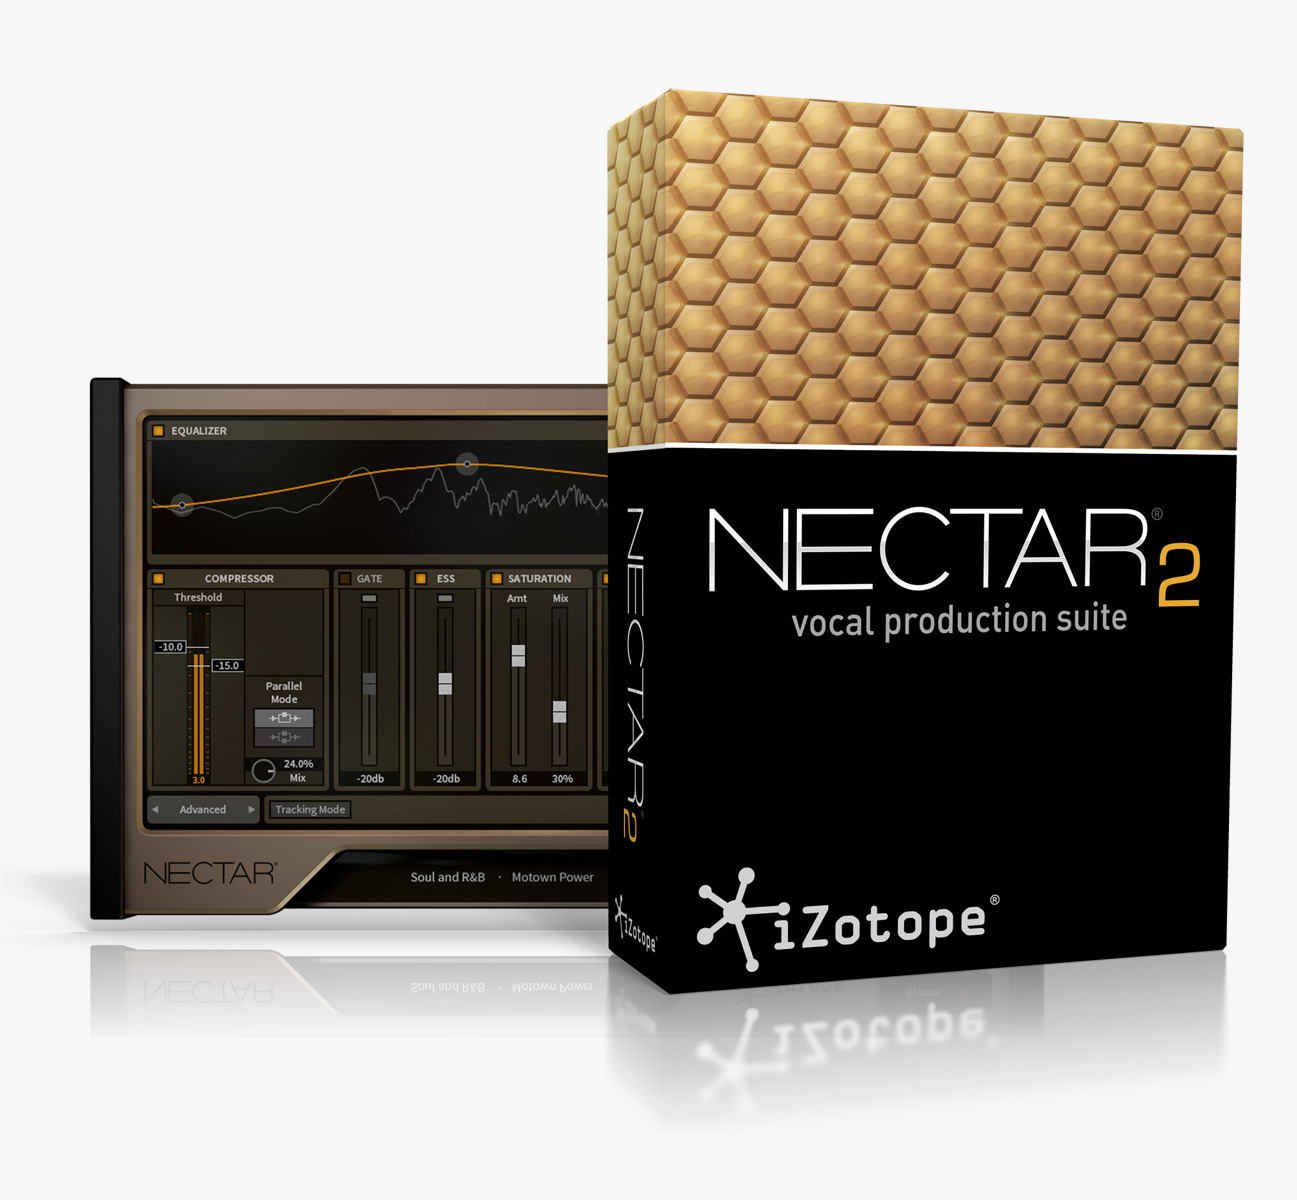 Izotope discount coupon